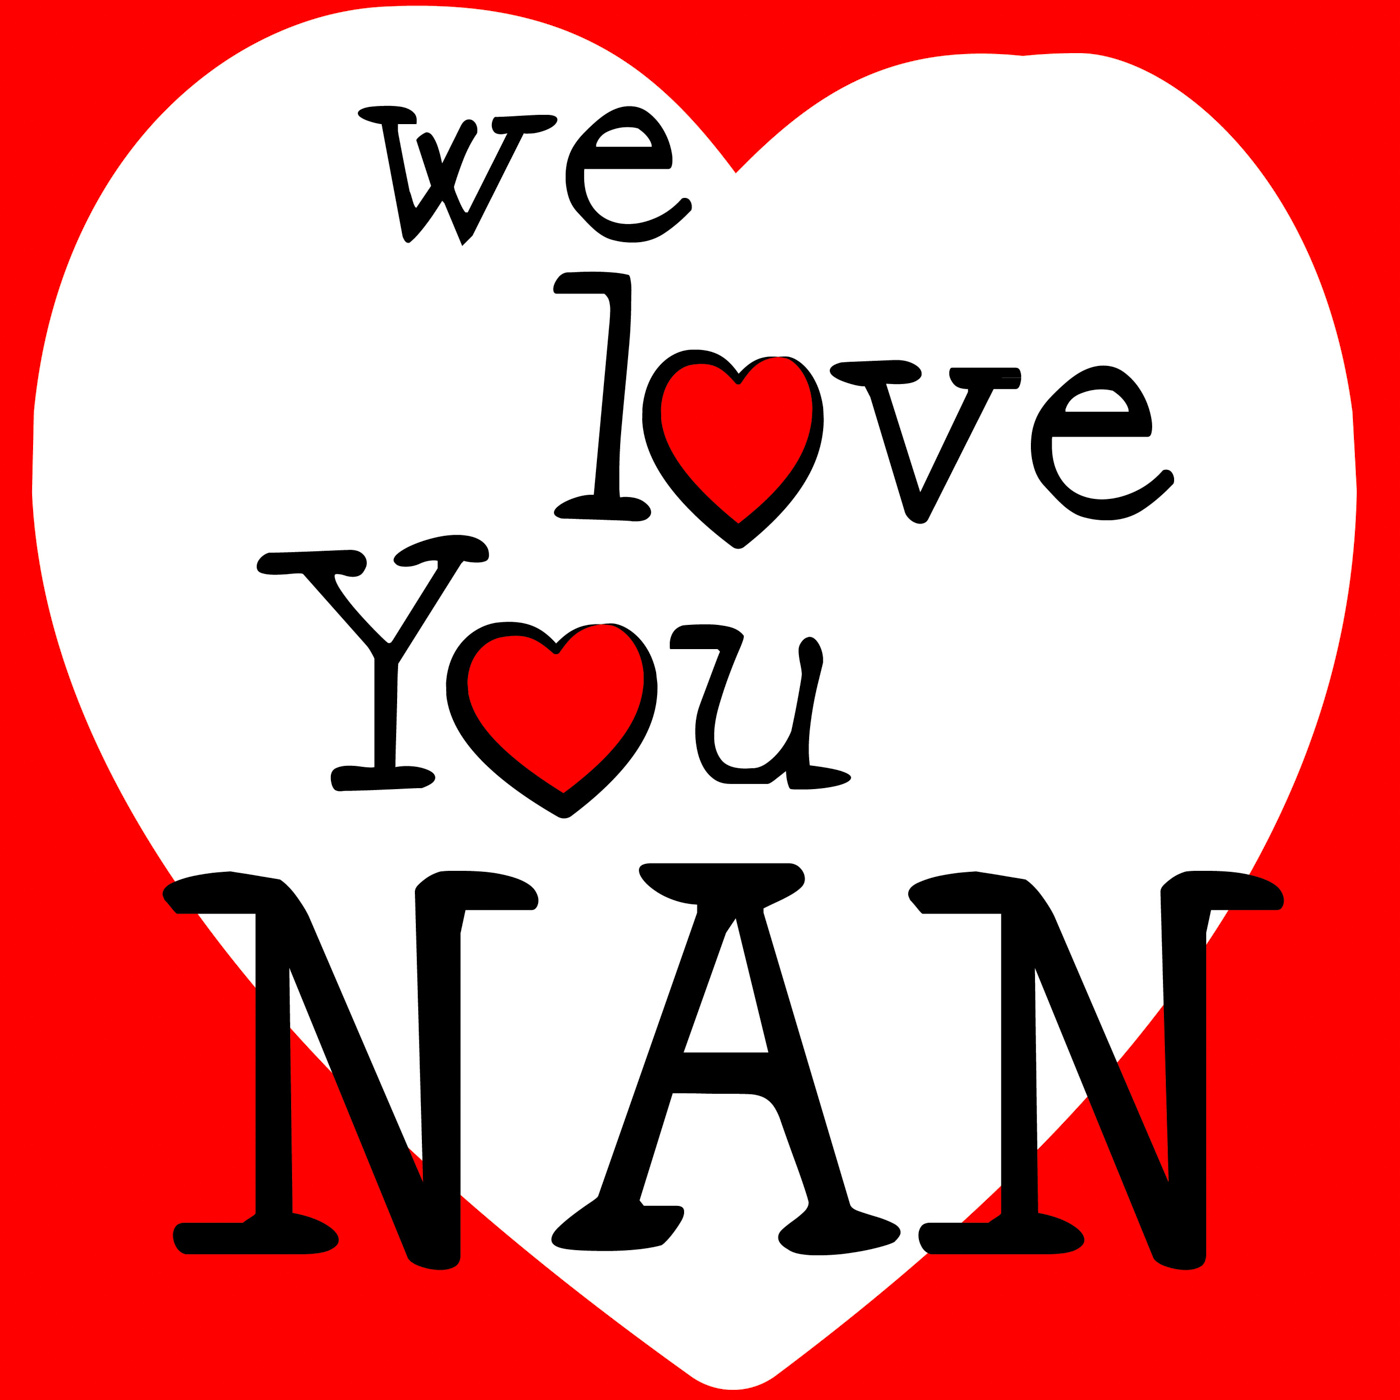 We love nan indicates passion affection and devotion photo